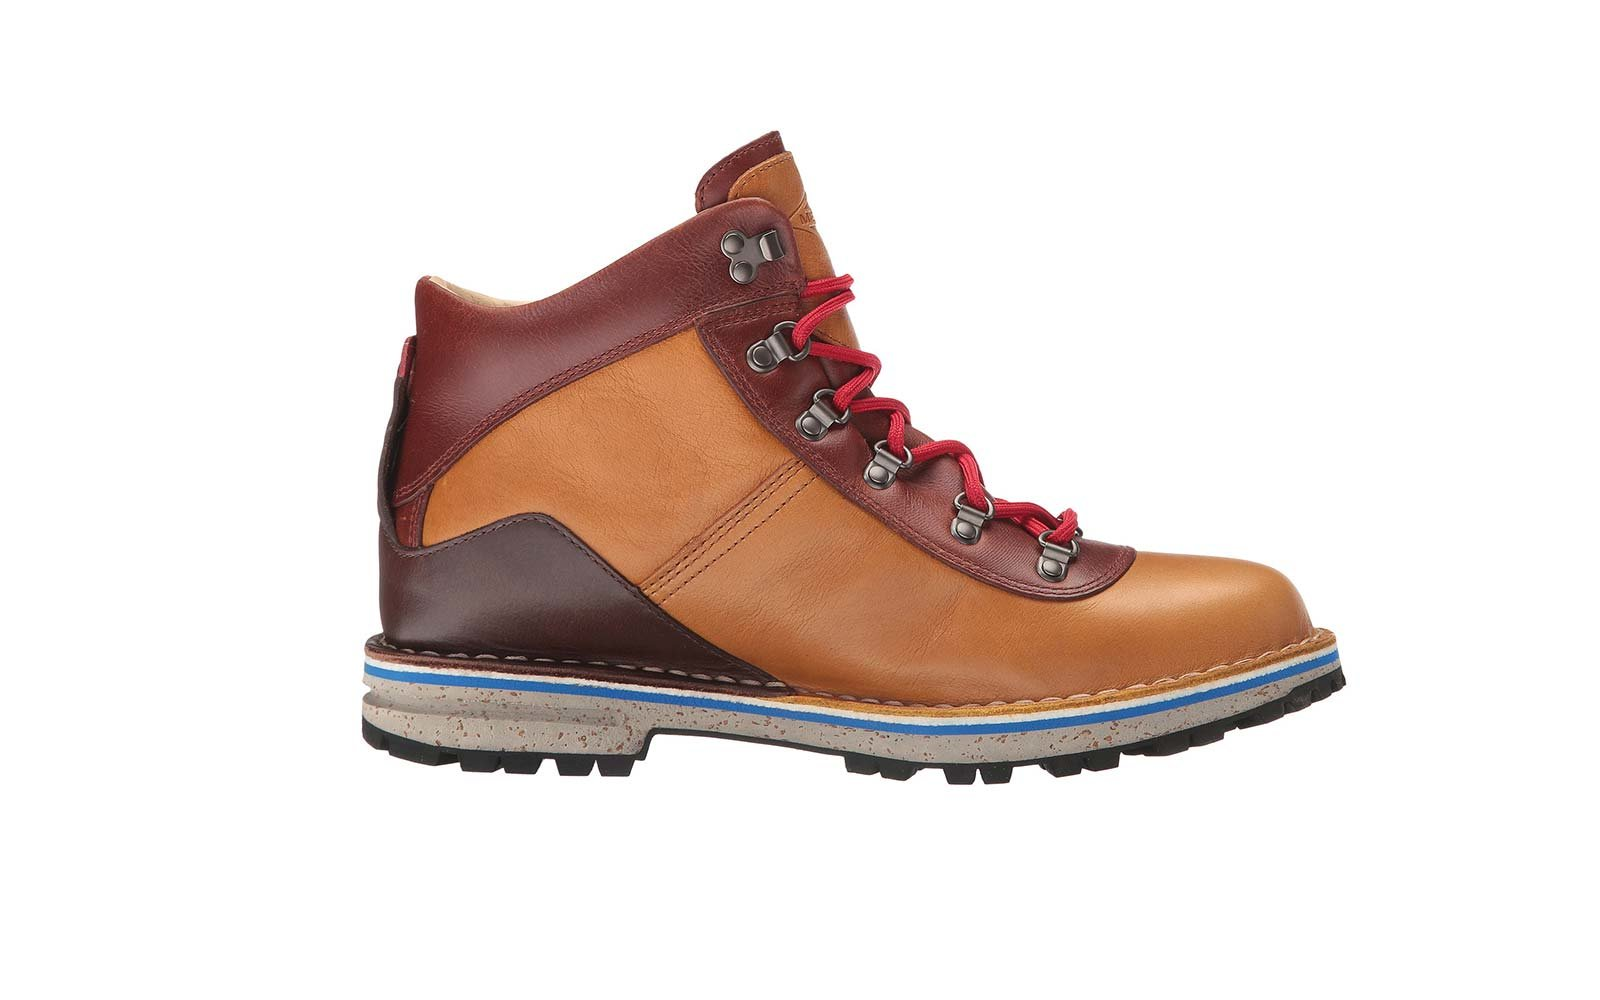 c6faf7adbcff 9 Cute Hiking Boots to Take You From Trail to Town